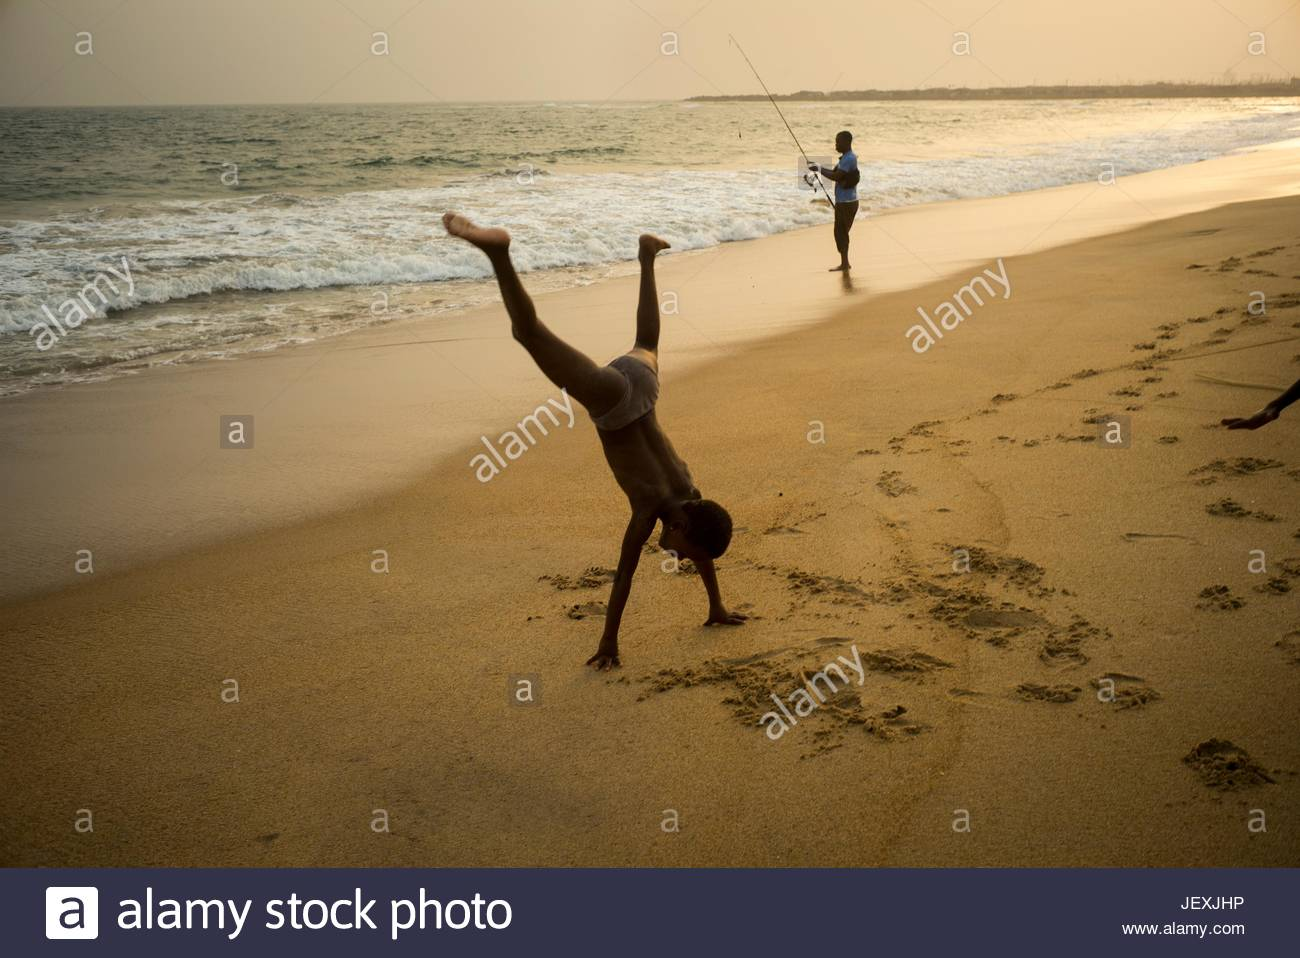 A boy does a cartwheel on the beach near a fisherman along the water's edge. - Stock Image